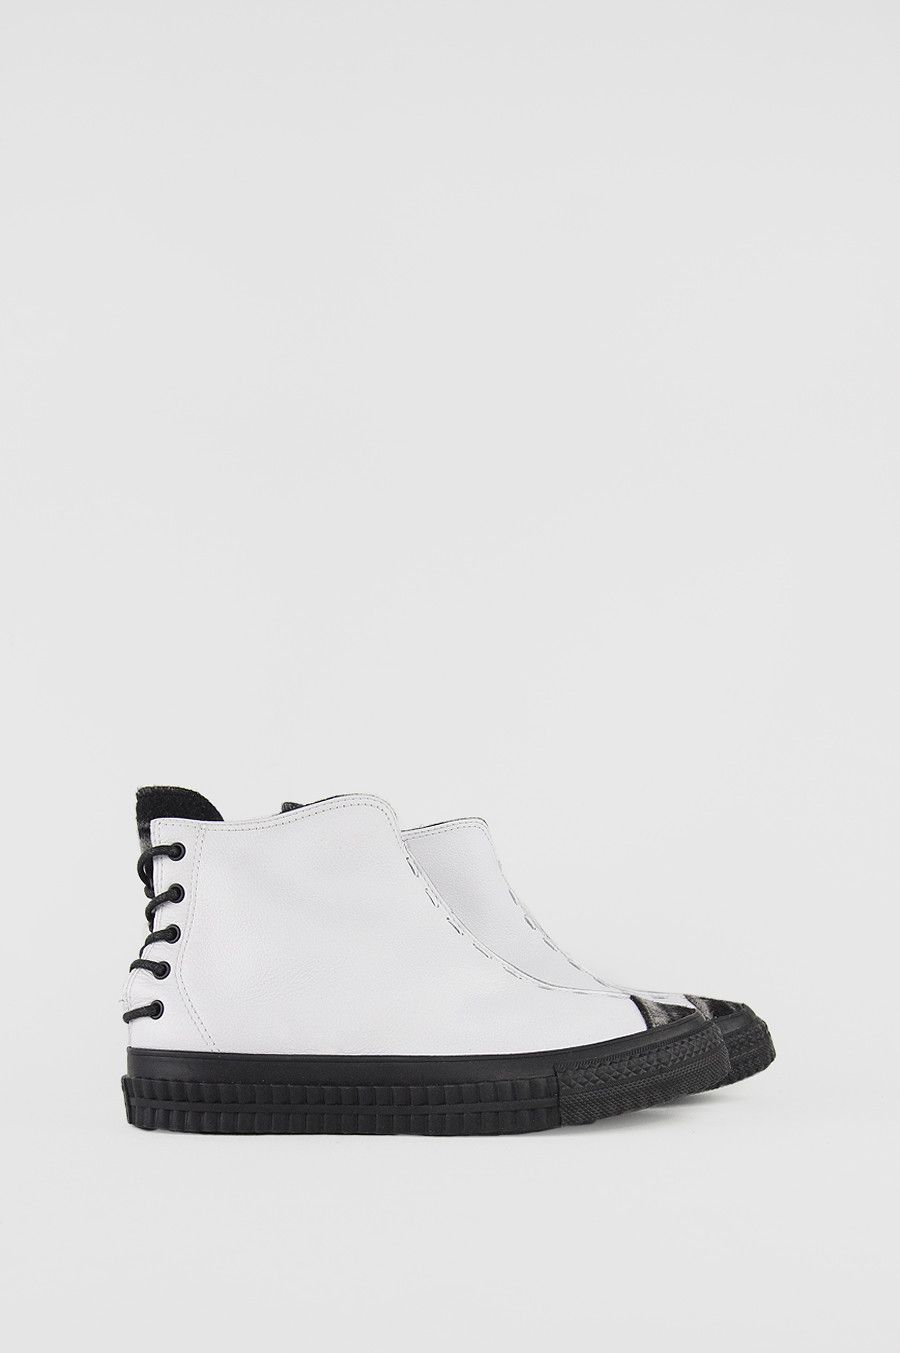 best cheap 8ebc9 fba3c CONVERSE CHUCK TAYLOR AS 1970 CREEPER WHITE BLACK Clarks Originals, Adidas  Originals, Red Wing